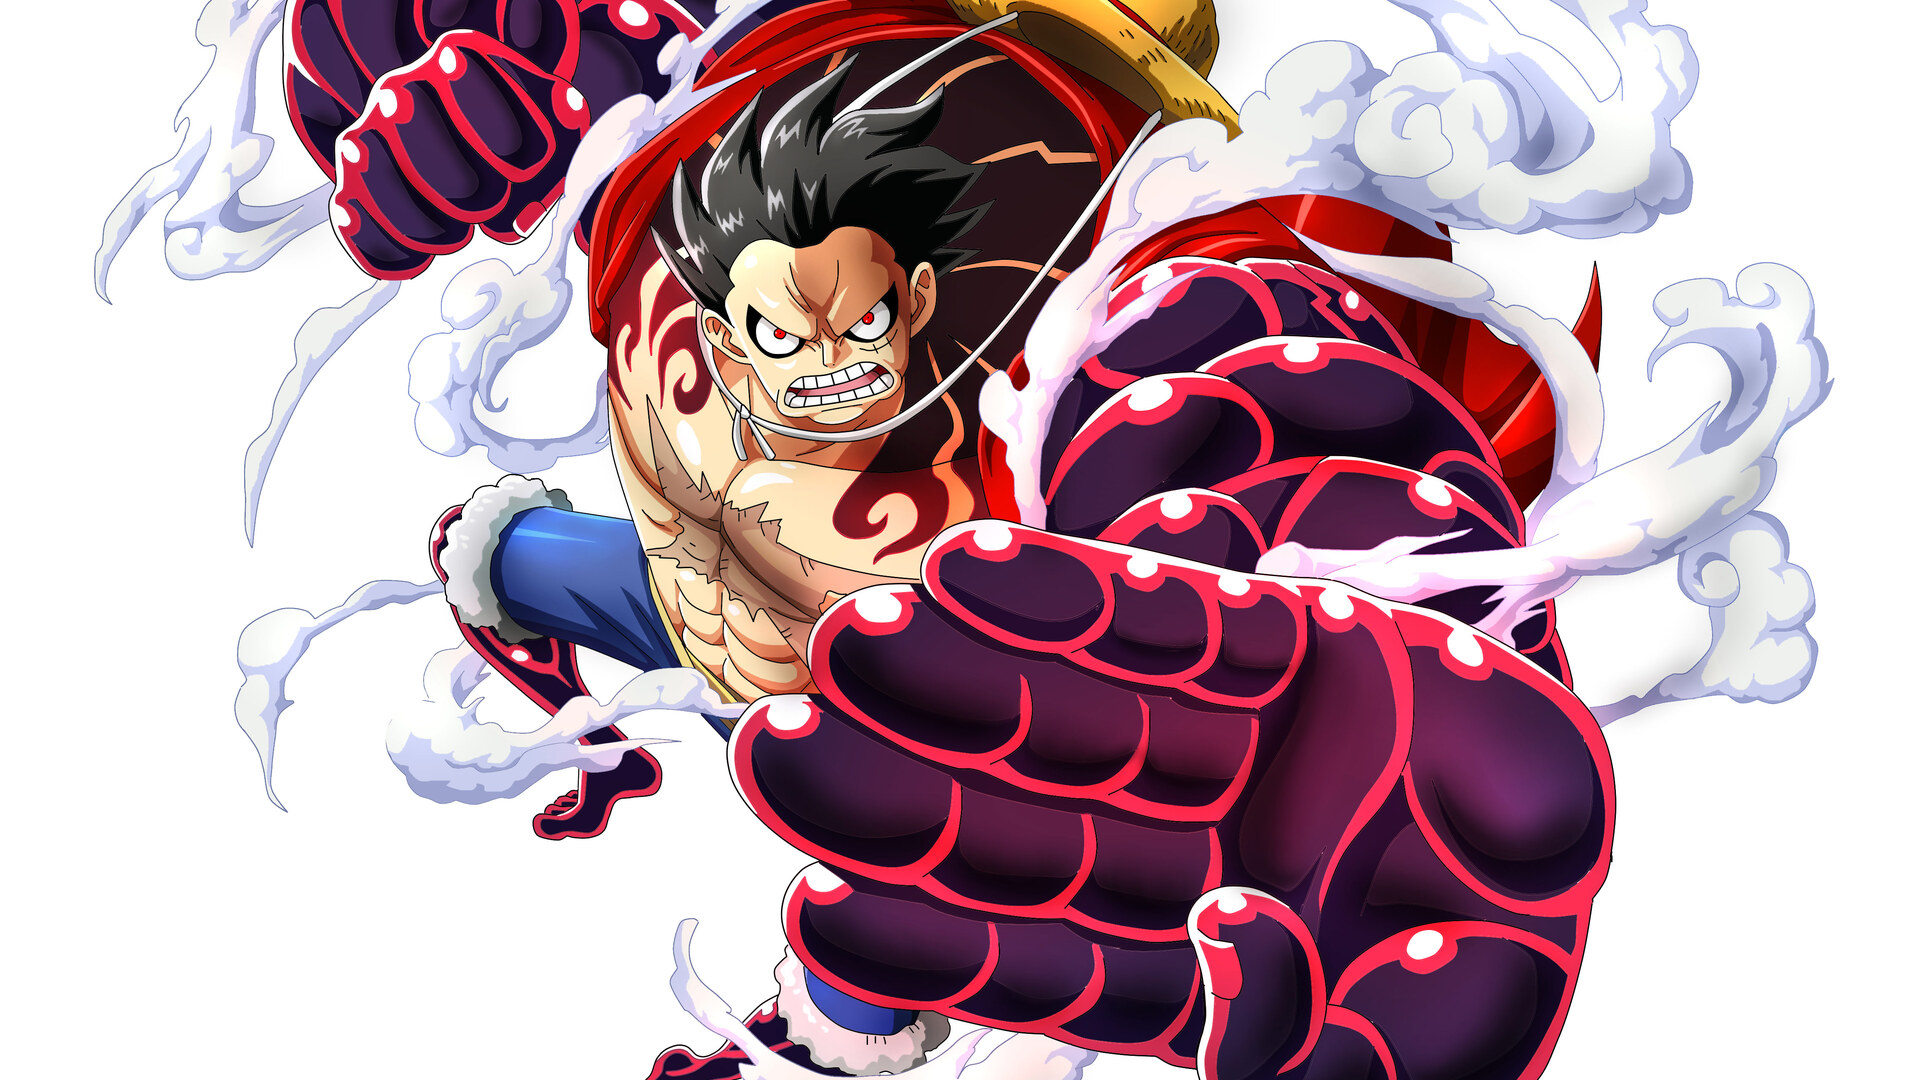 1920x1080 Monkey D Luffy One Piece Laptop Full Hd 1080p Hd 4k Wallpapers Images Backgrounds Photos And Pictures